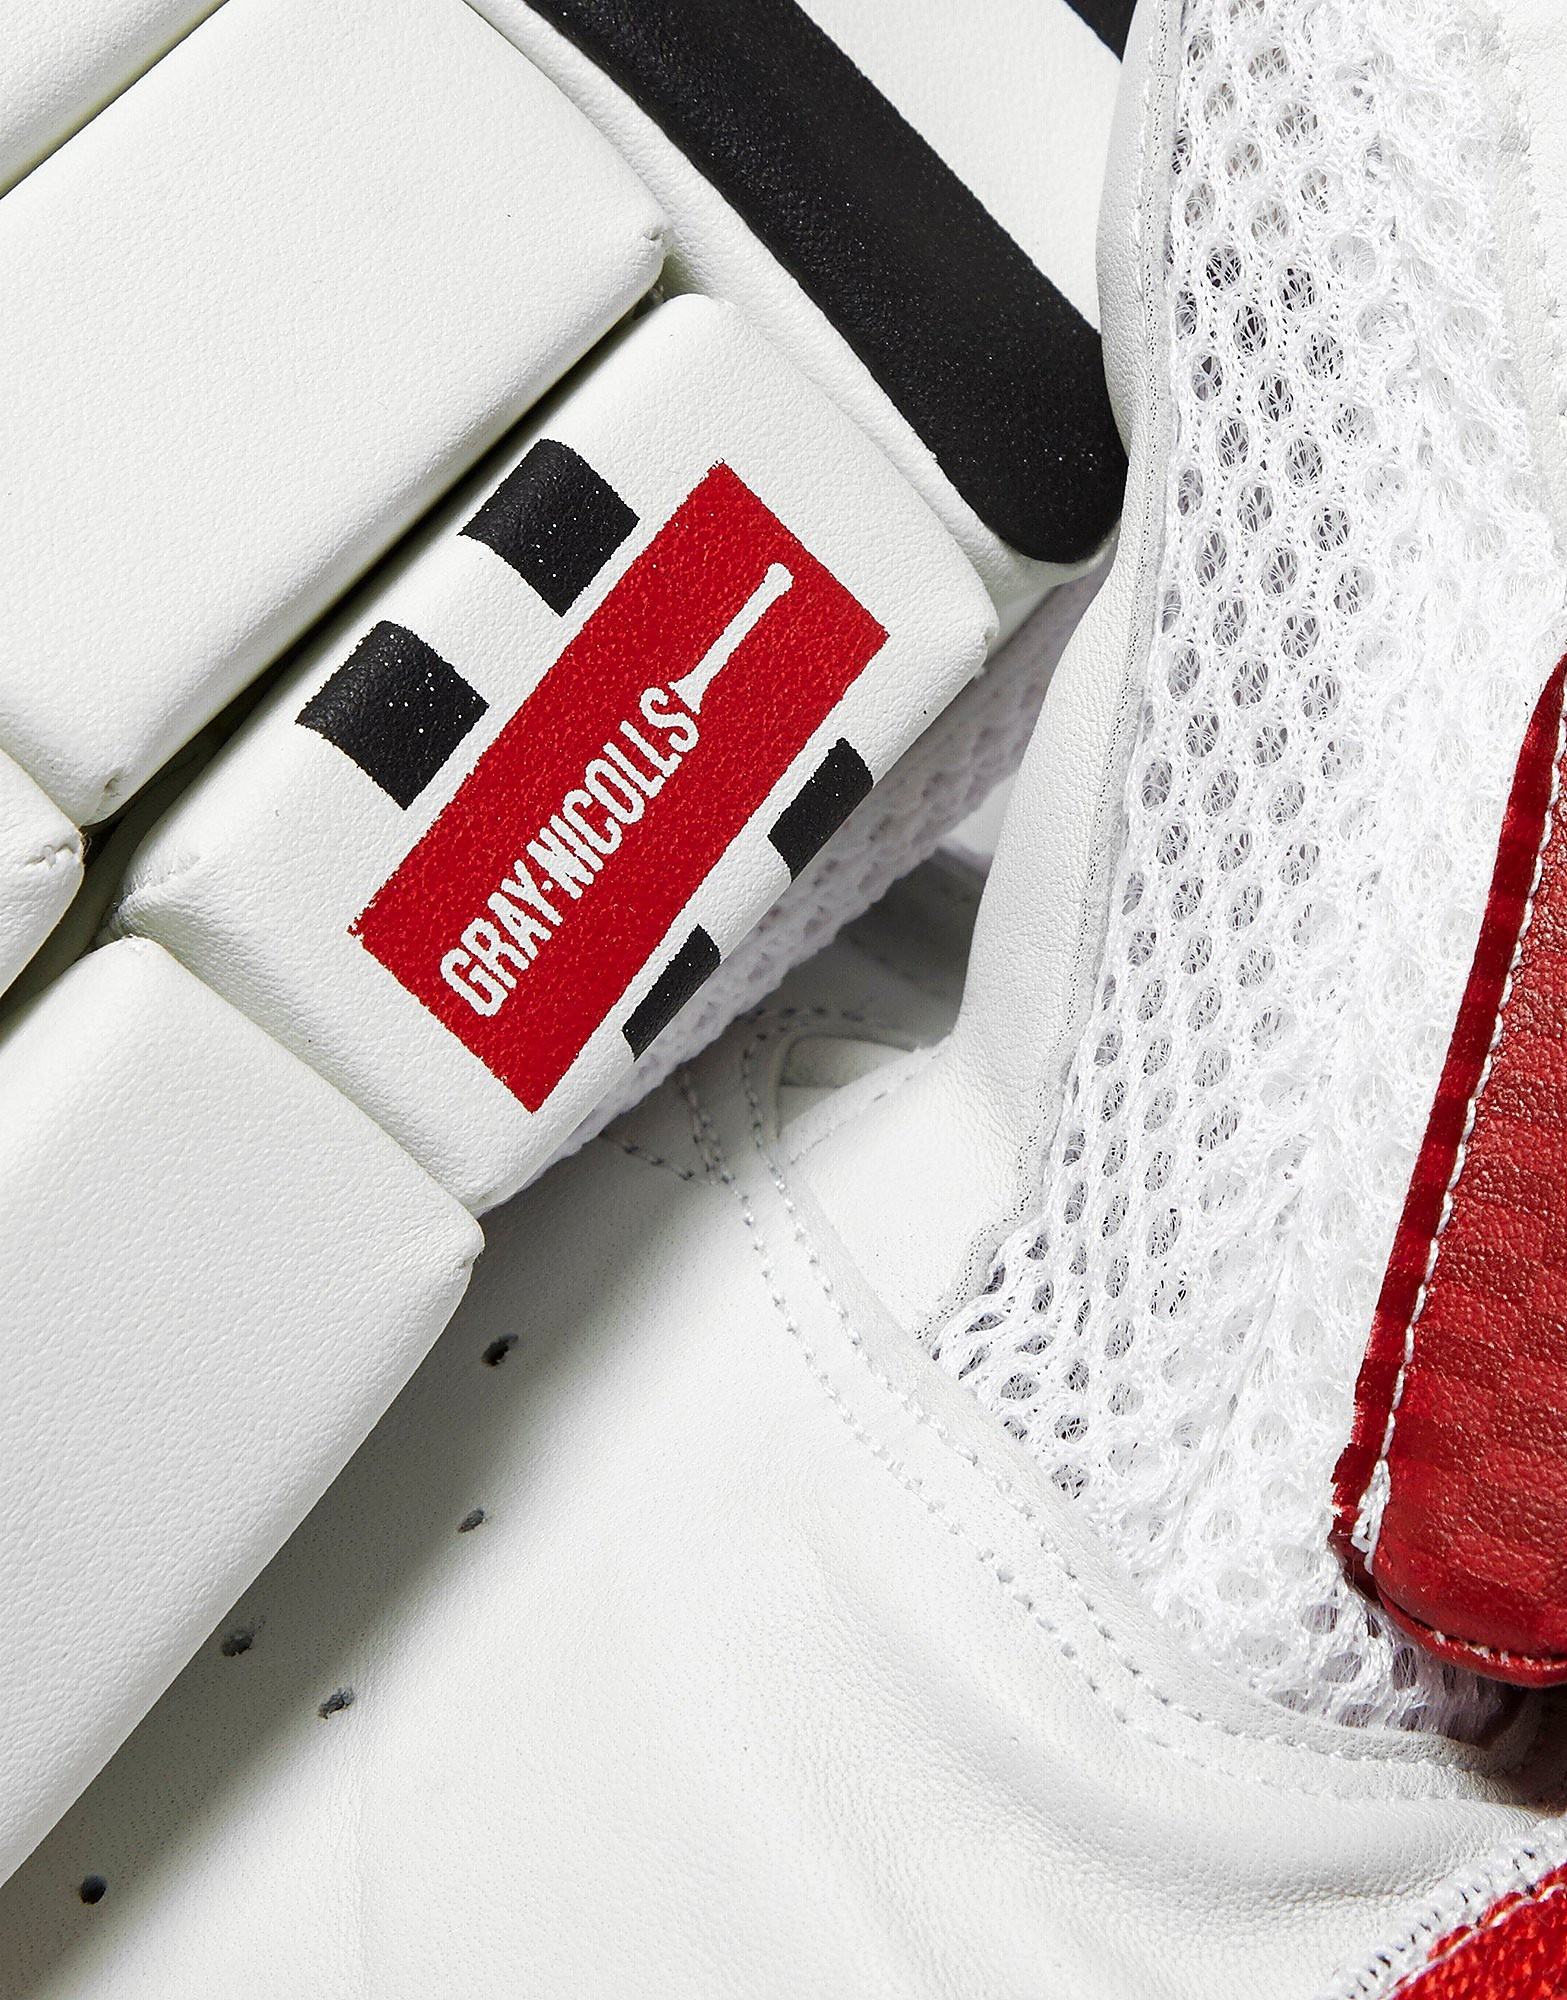 Gray Nicolls Predator 3 450 Batting Gloves